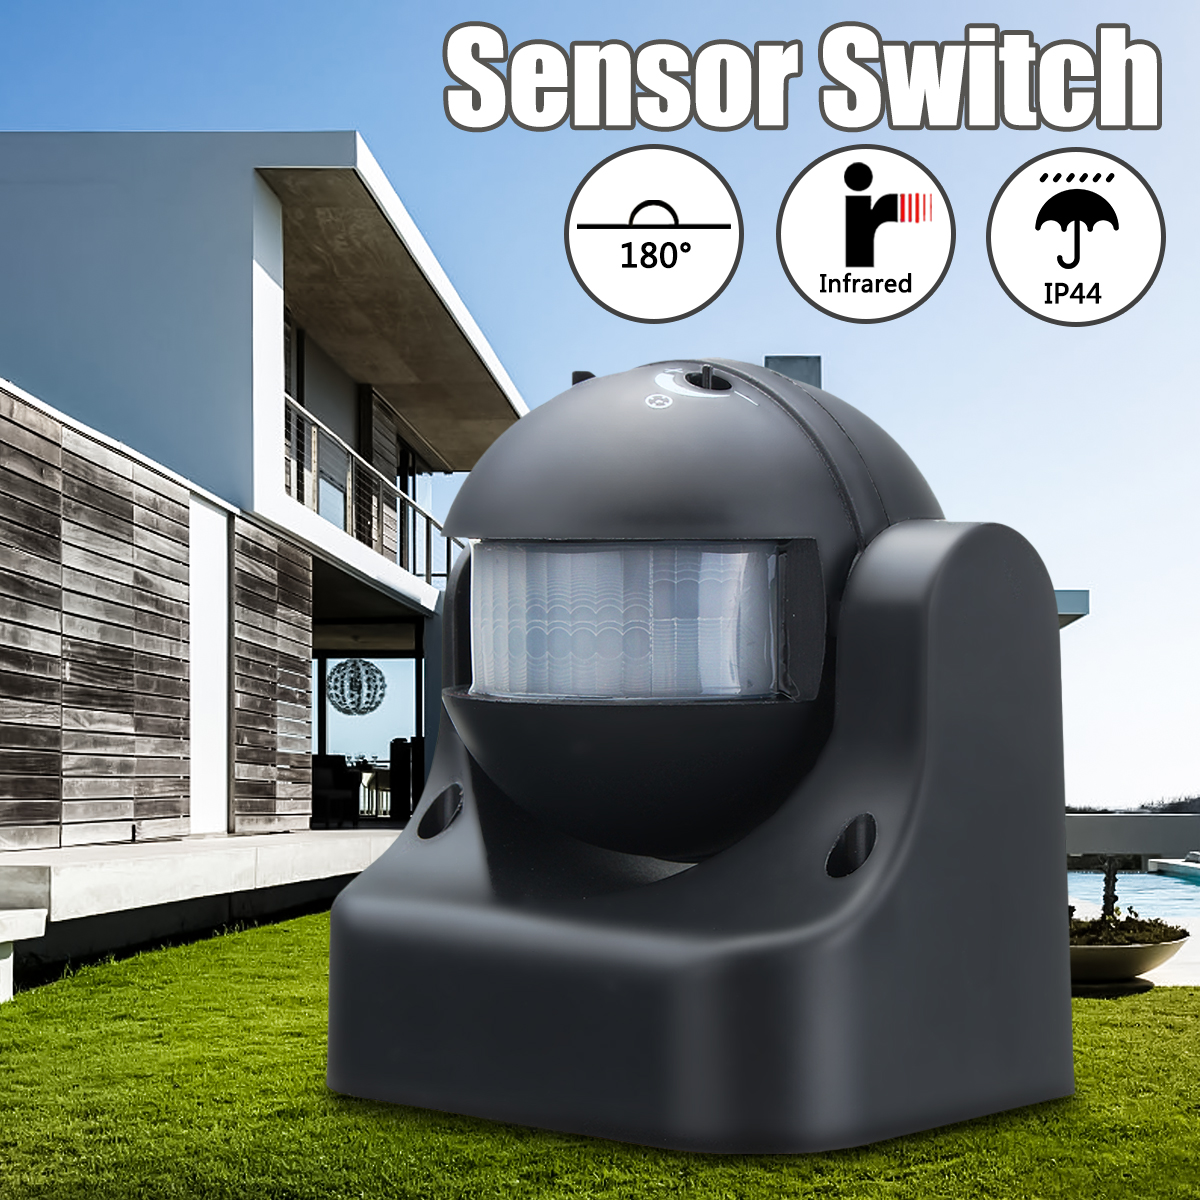 180 degree Auto PIR Motion Sensor Detector Switch Home Garden Outdoor Light Lamp Switch Black Hot Sale180 degree Auto PIR Motion Sensor Detector Switch Home Garden Outdoor Light Lamp Switch Black Hot Sale